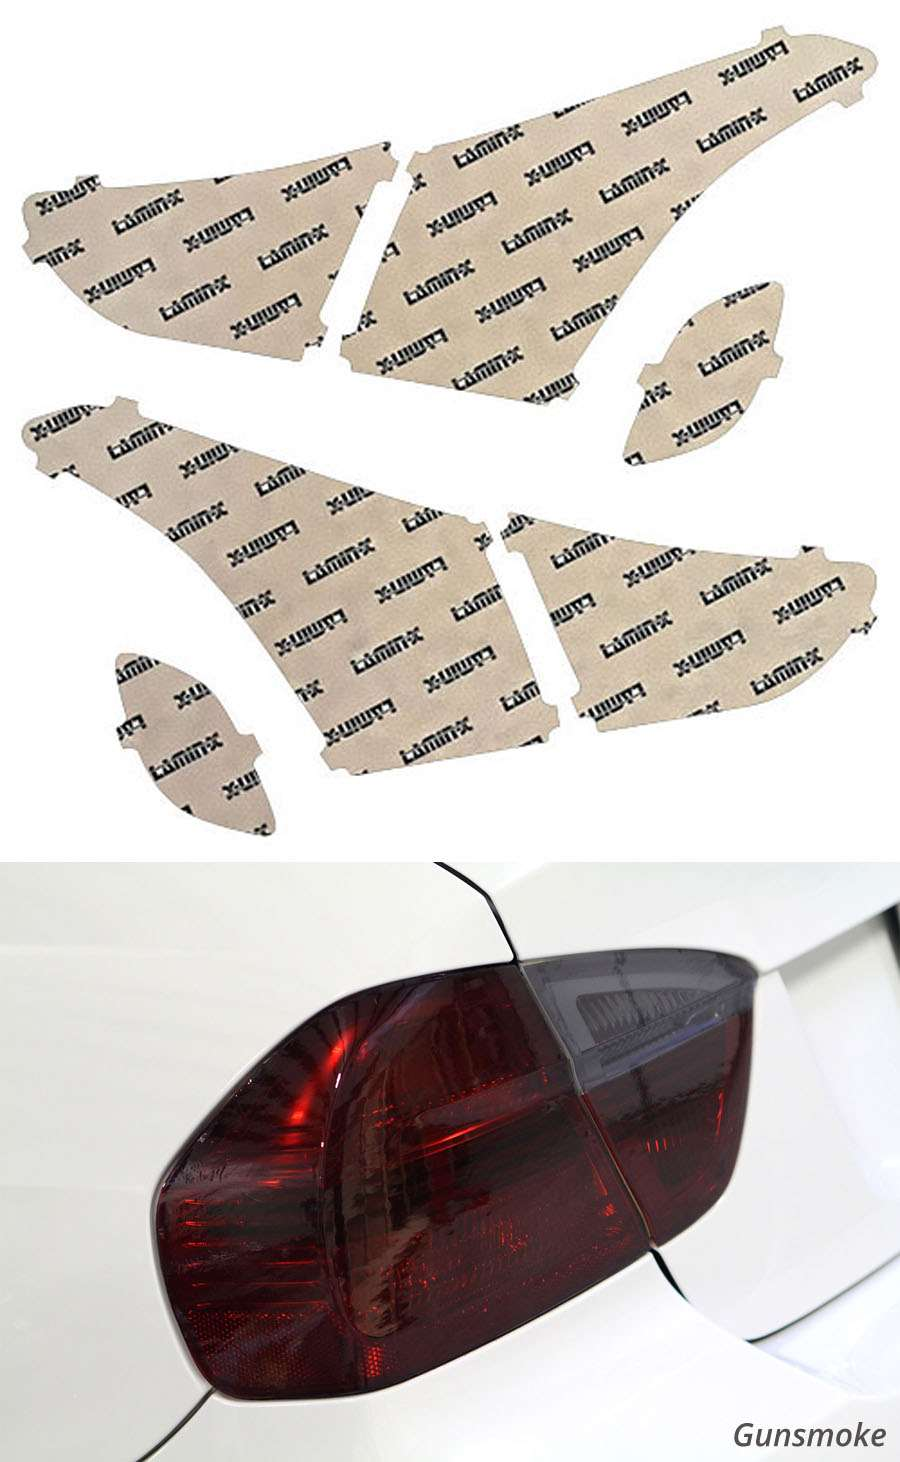 Hyundai Elantra GT 13-15 Gunsmoke Tail Light Covers Lamin-X HY225G